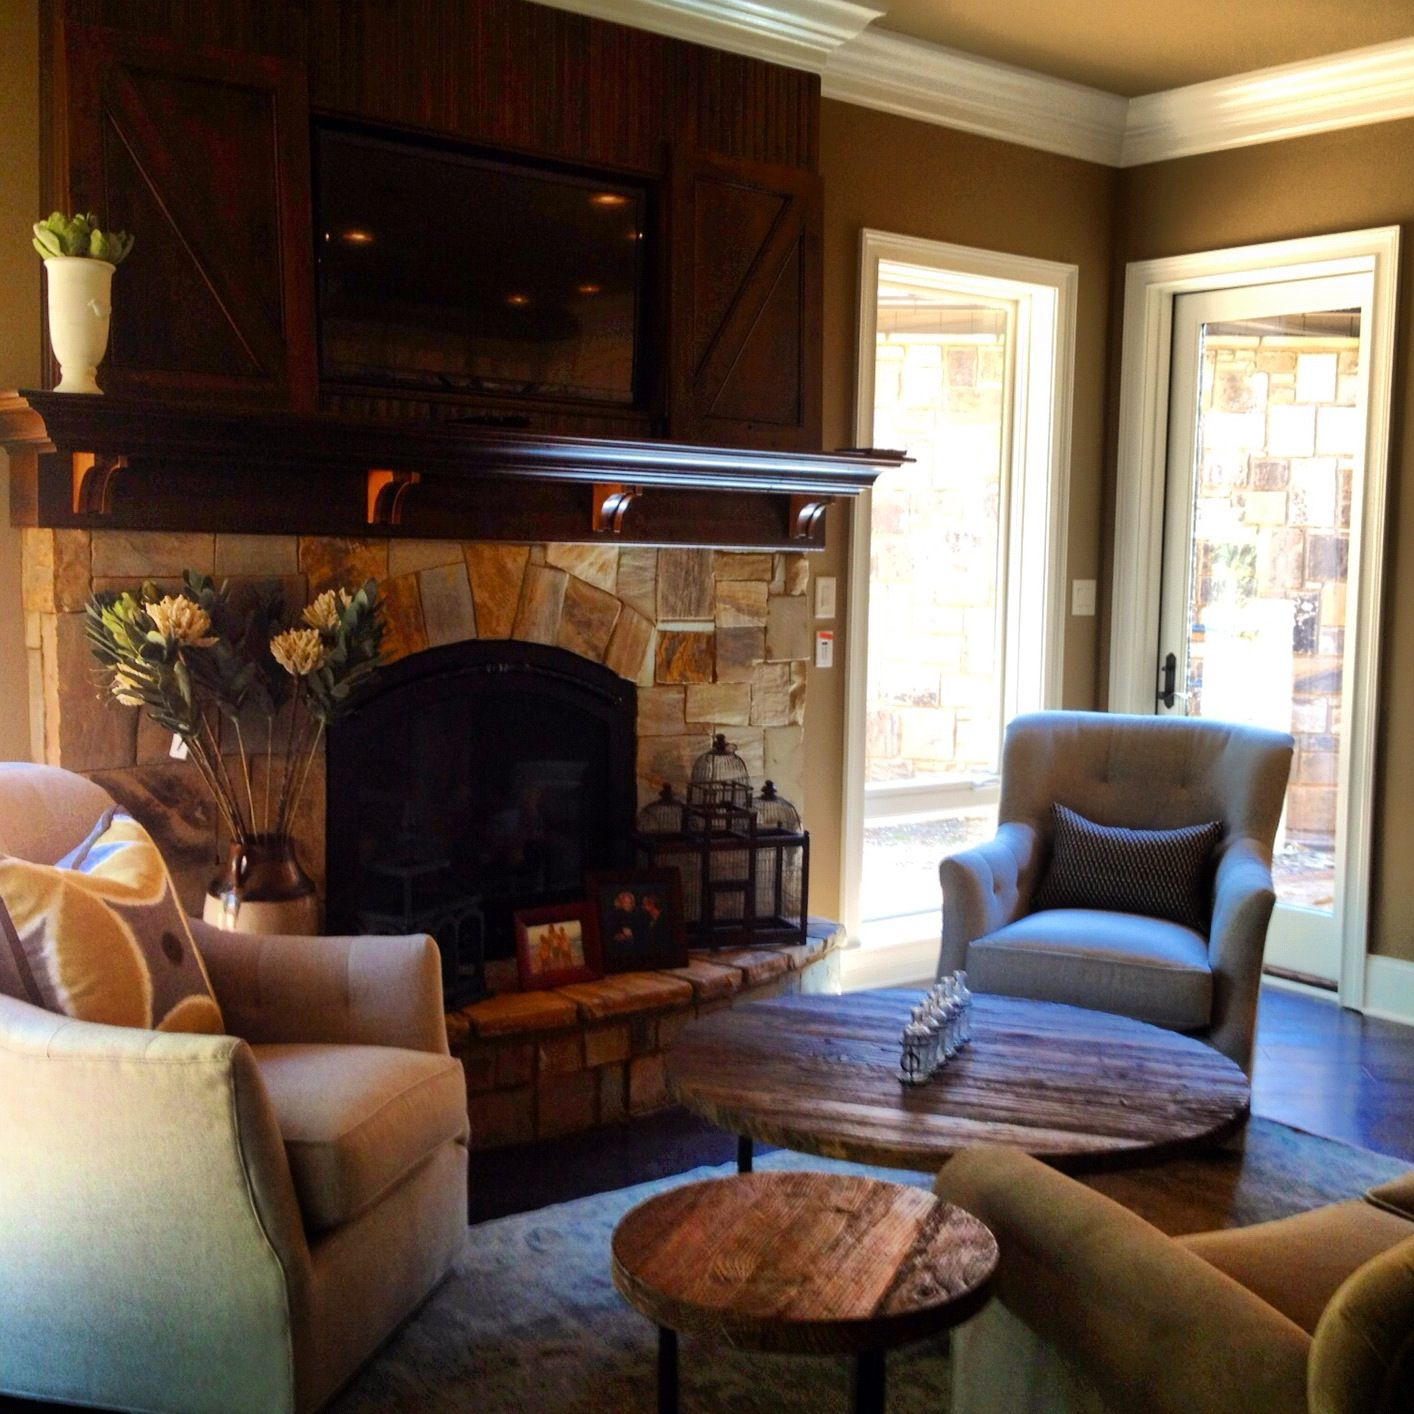 Pin By Jessica Wilkerson On My Work Fireplace Seating Hearth